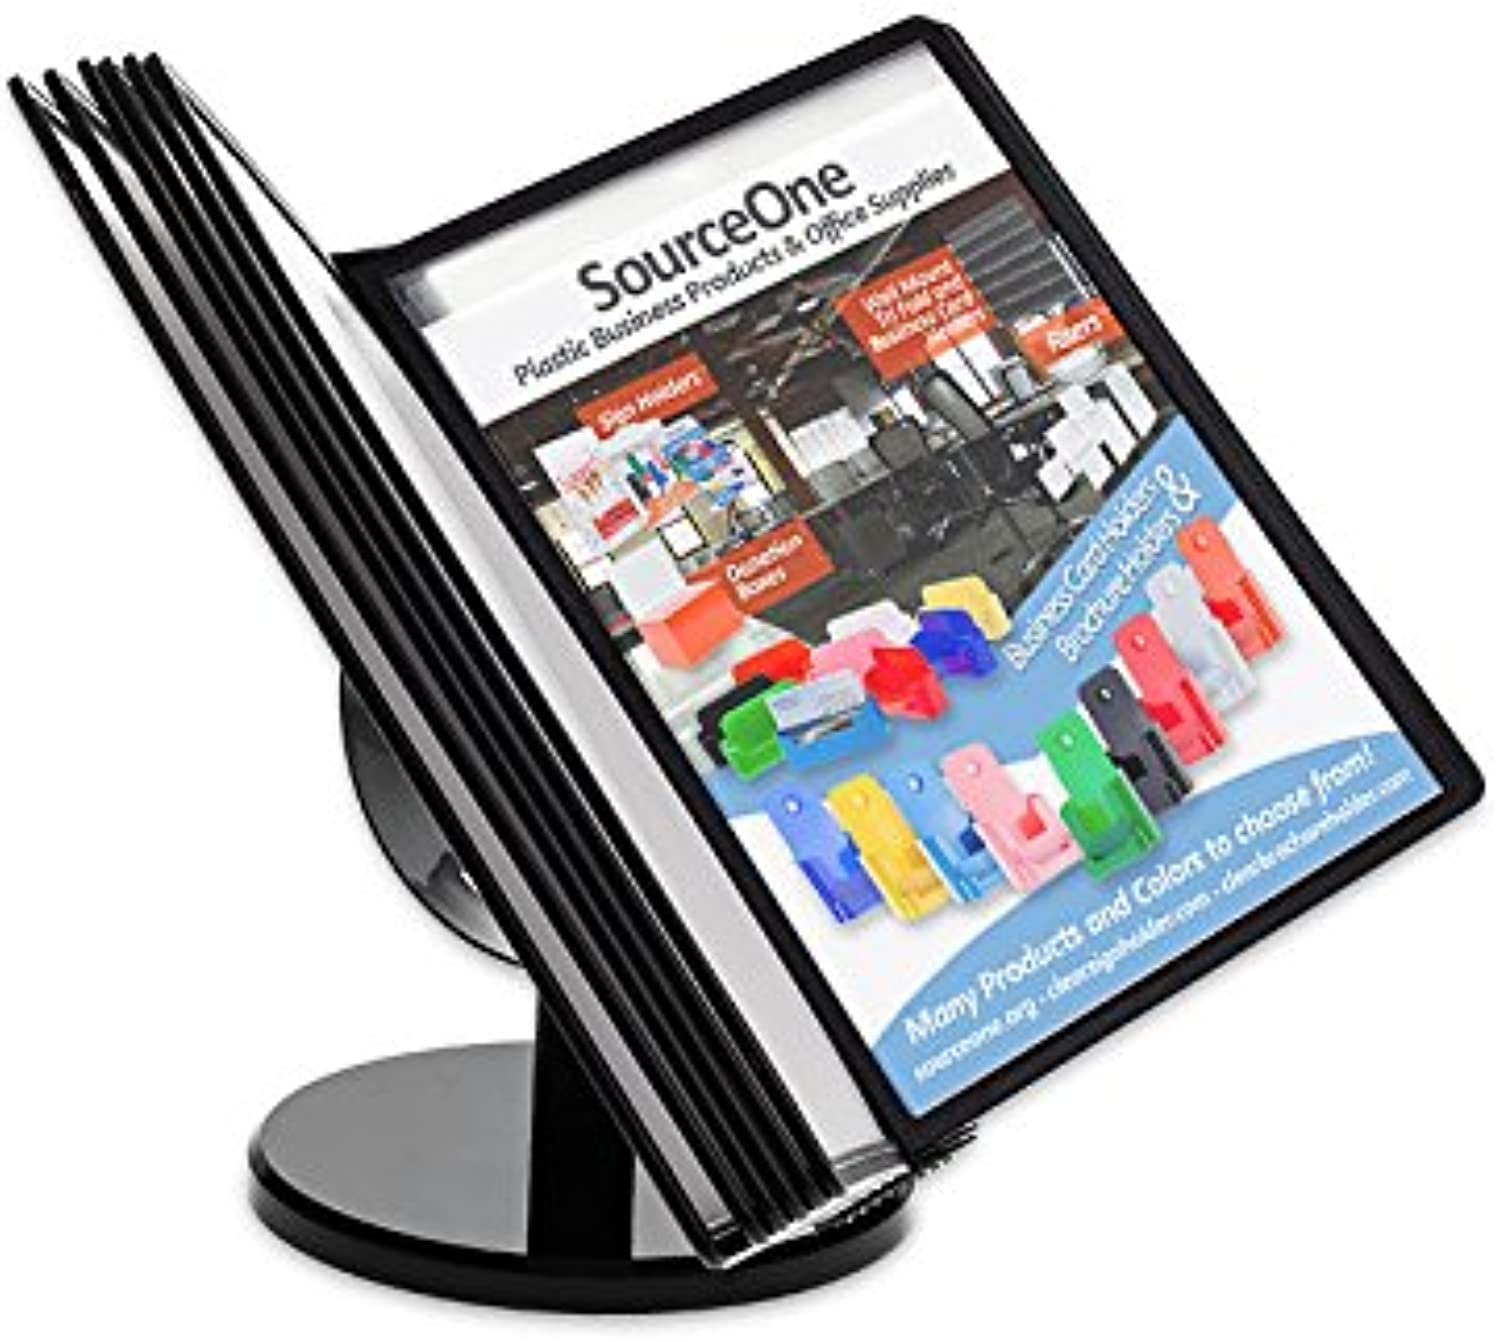 Source One Commercial Menu, Wholesale Vendor Catalog, Sales Organizer Quick Find Reference Holder Display 20 Page